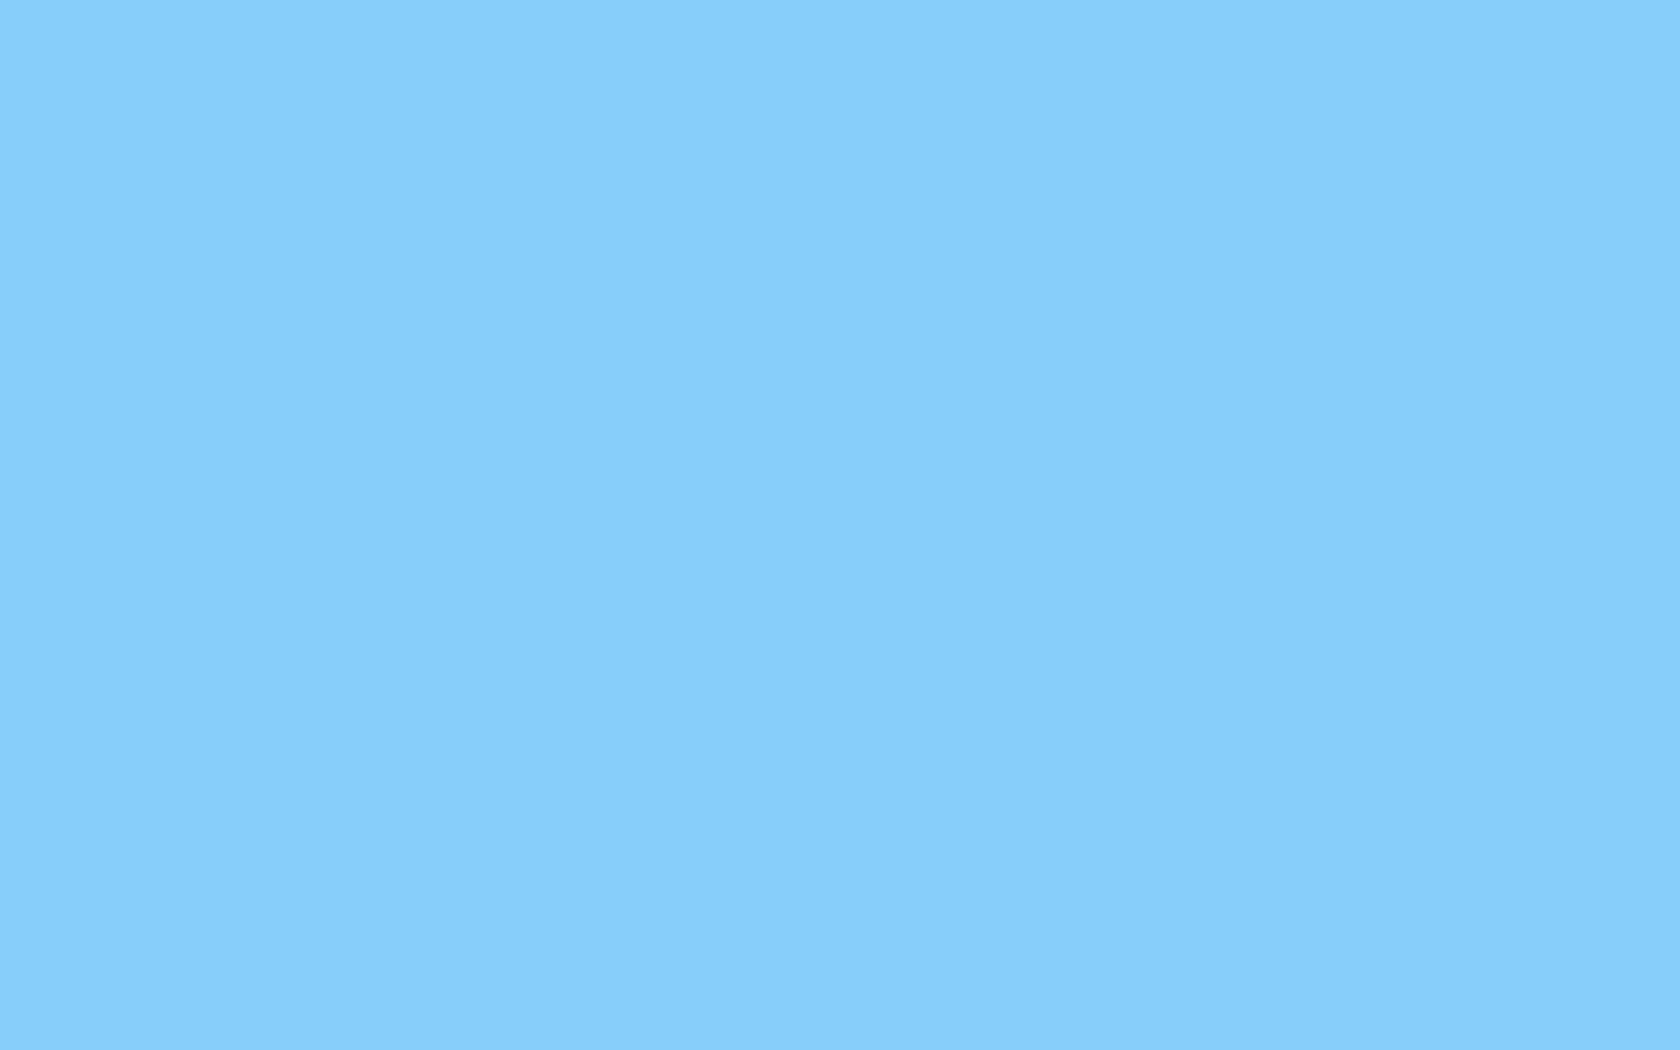 1680x1050 Light Sky Blue Solid Color Background